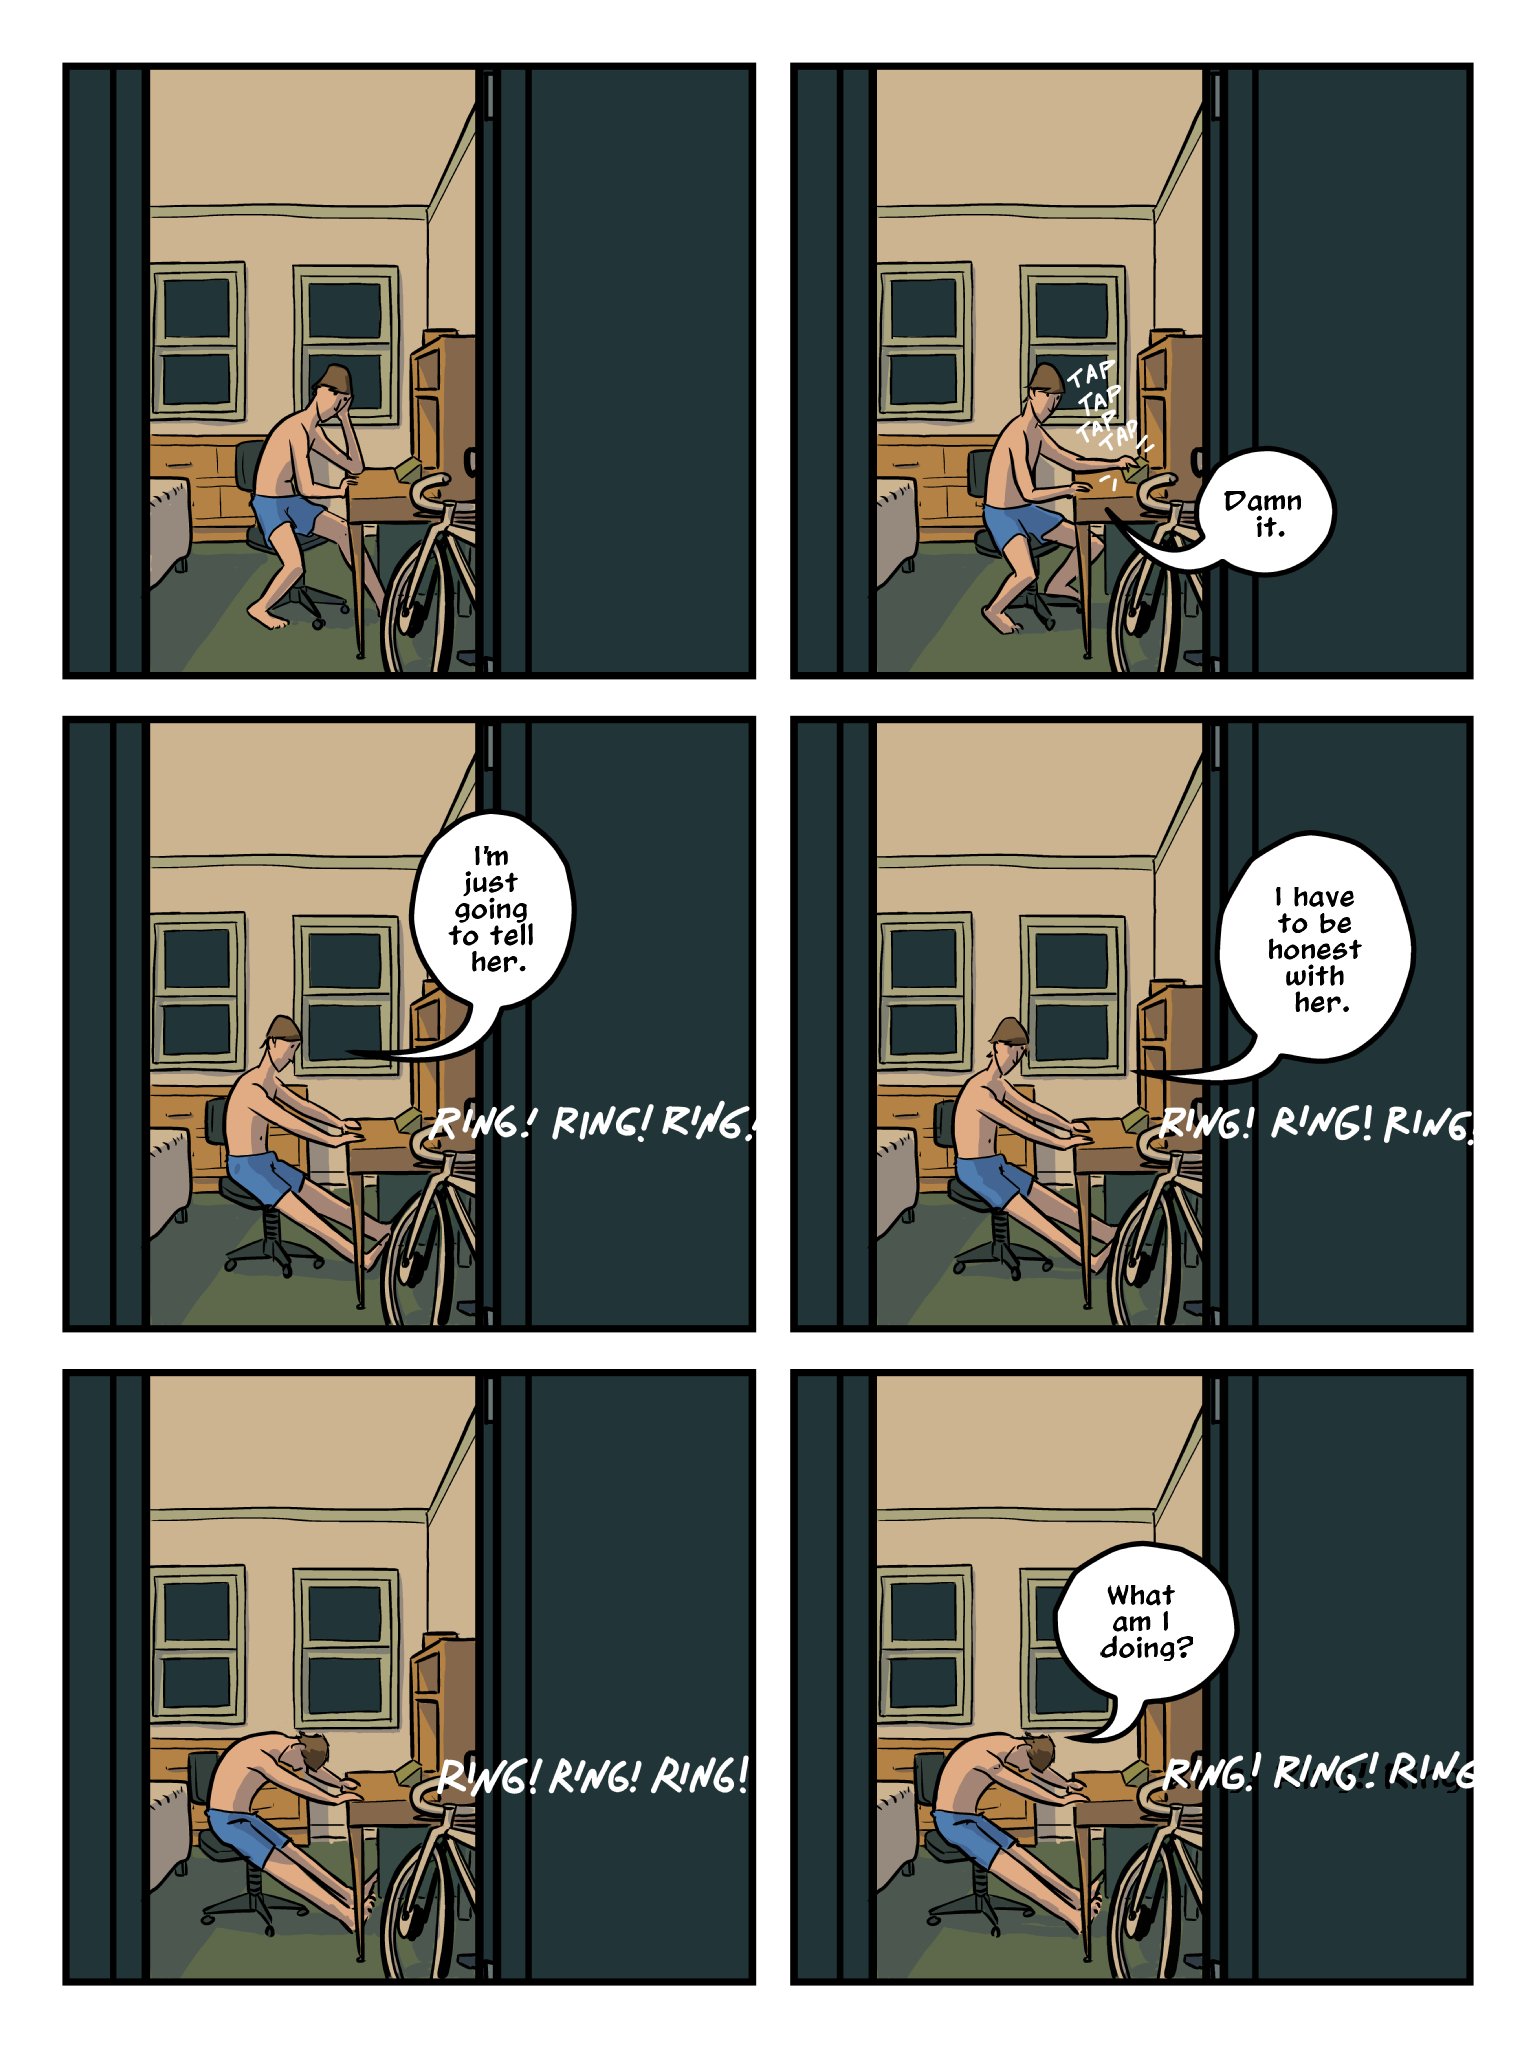 """A page from the comic """"Oh, It's the End of the World"""" by Matthew Bogart.    Howard sits in his bedroom in his underpants. He says:  """"Damn it.""""   He dials the phone.   """"I'm just going to tell her. I have to be honest with her. What am I doing?"""""""